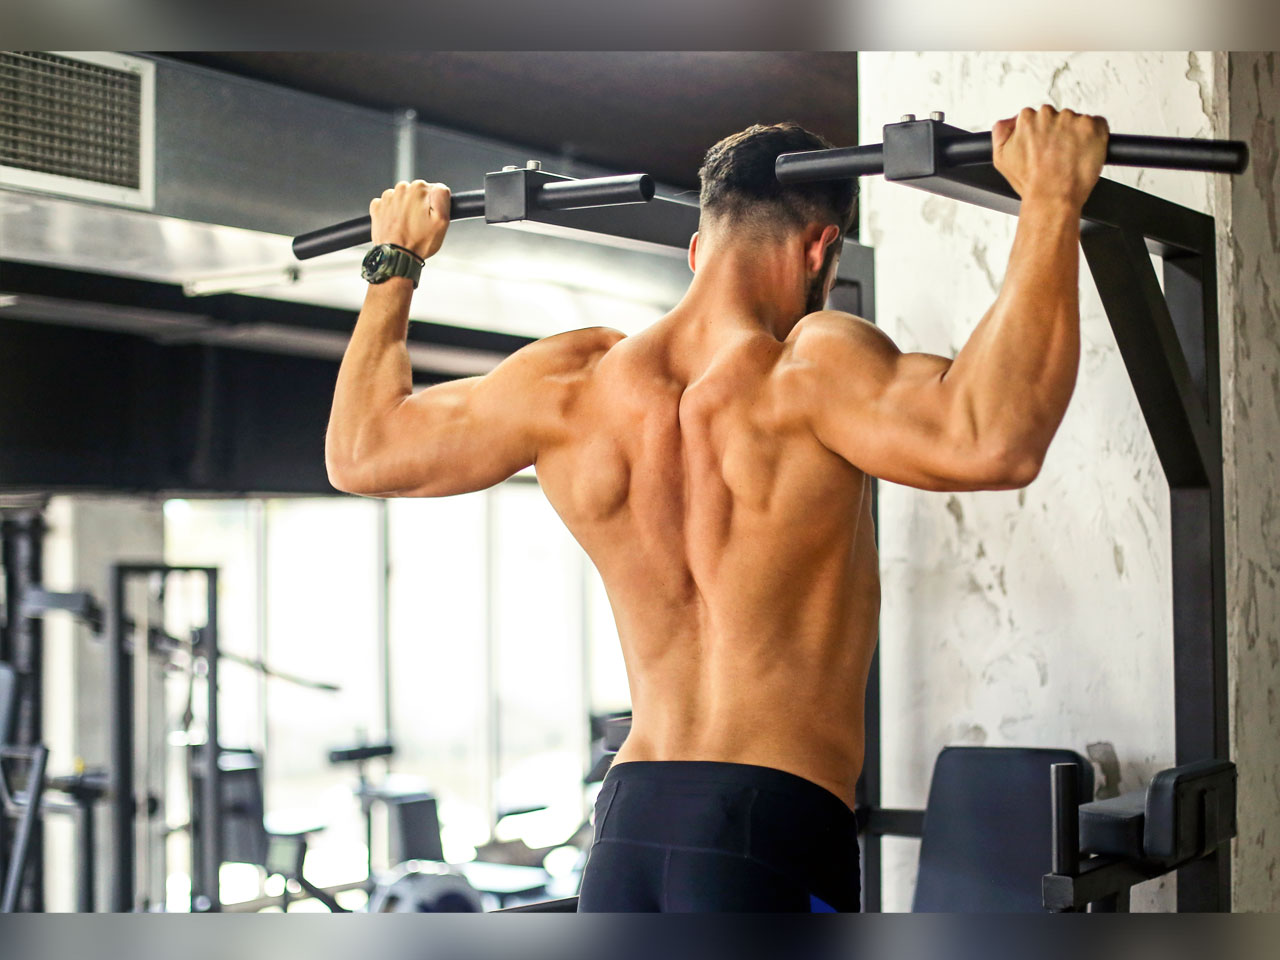 10 at home workouts to build muscle in under 20 minutes